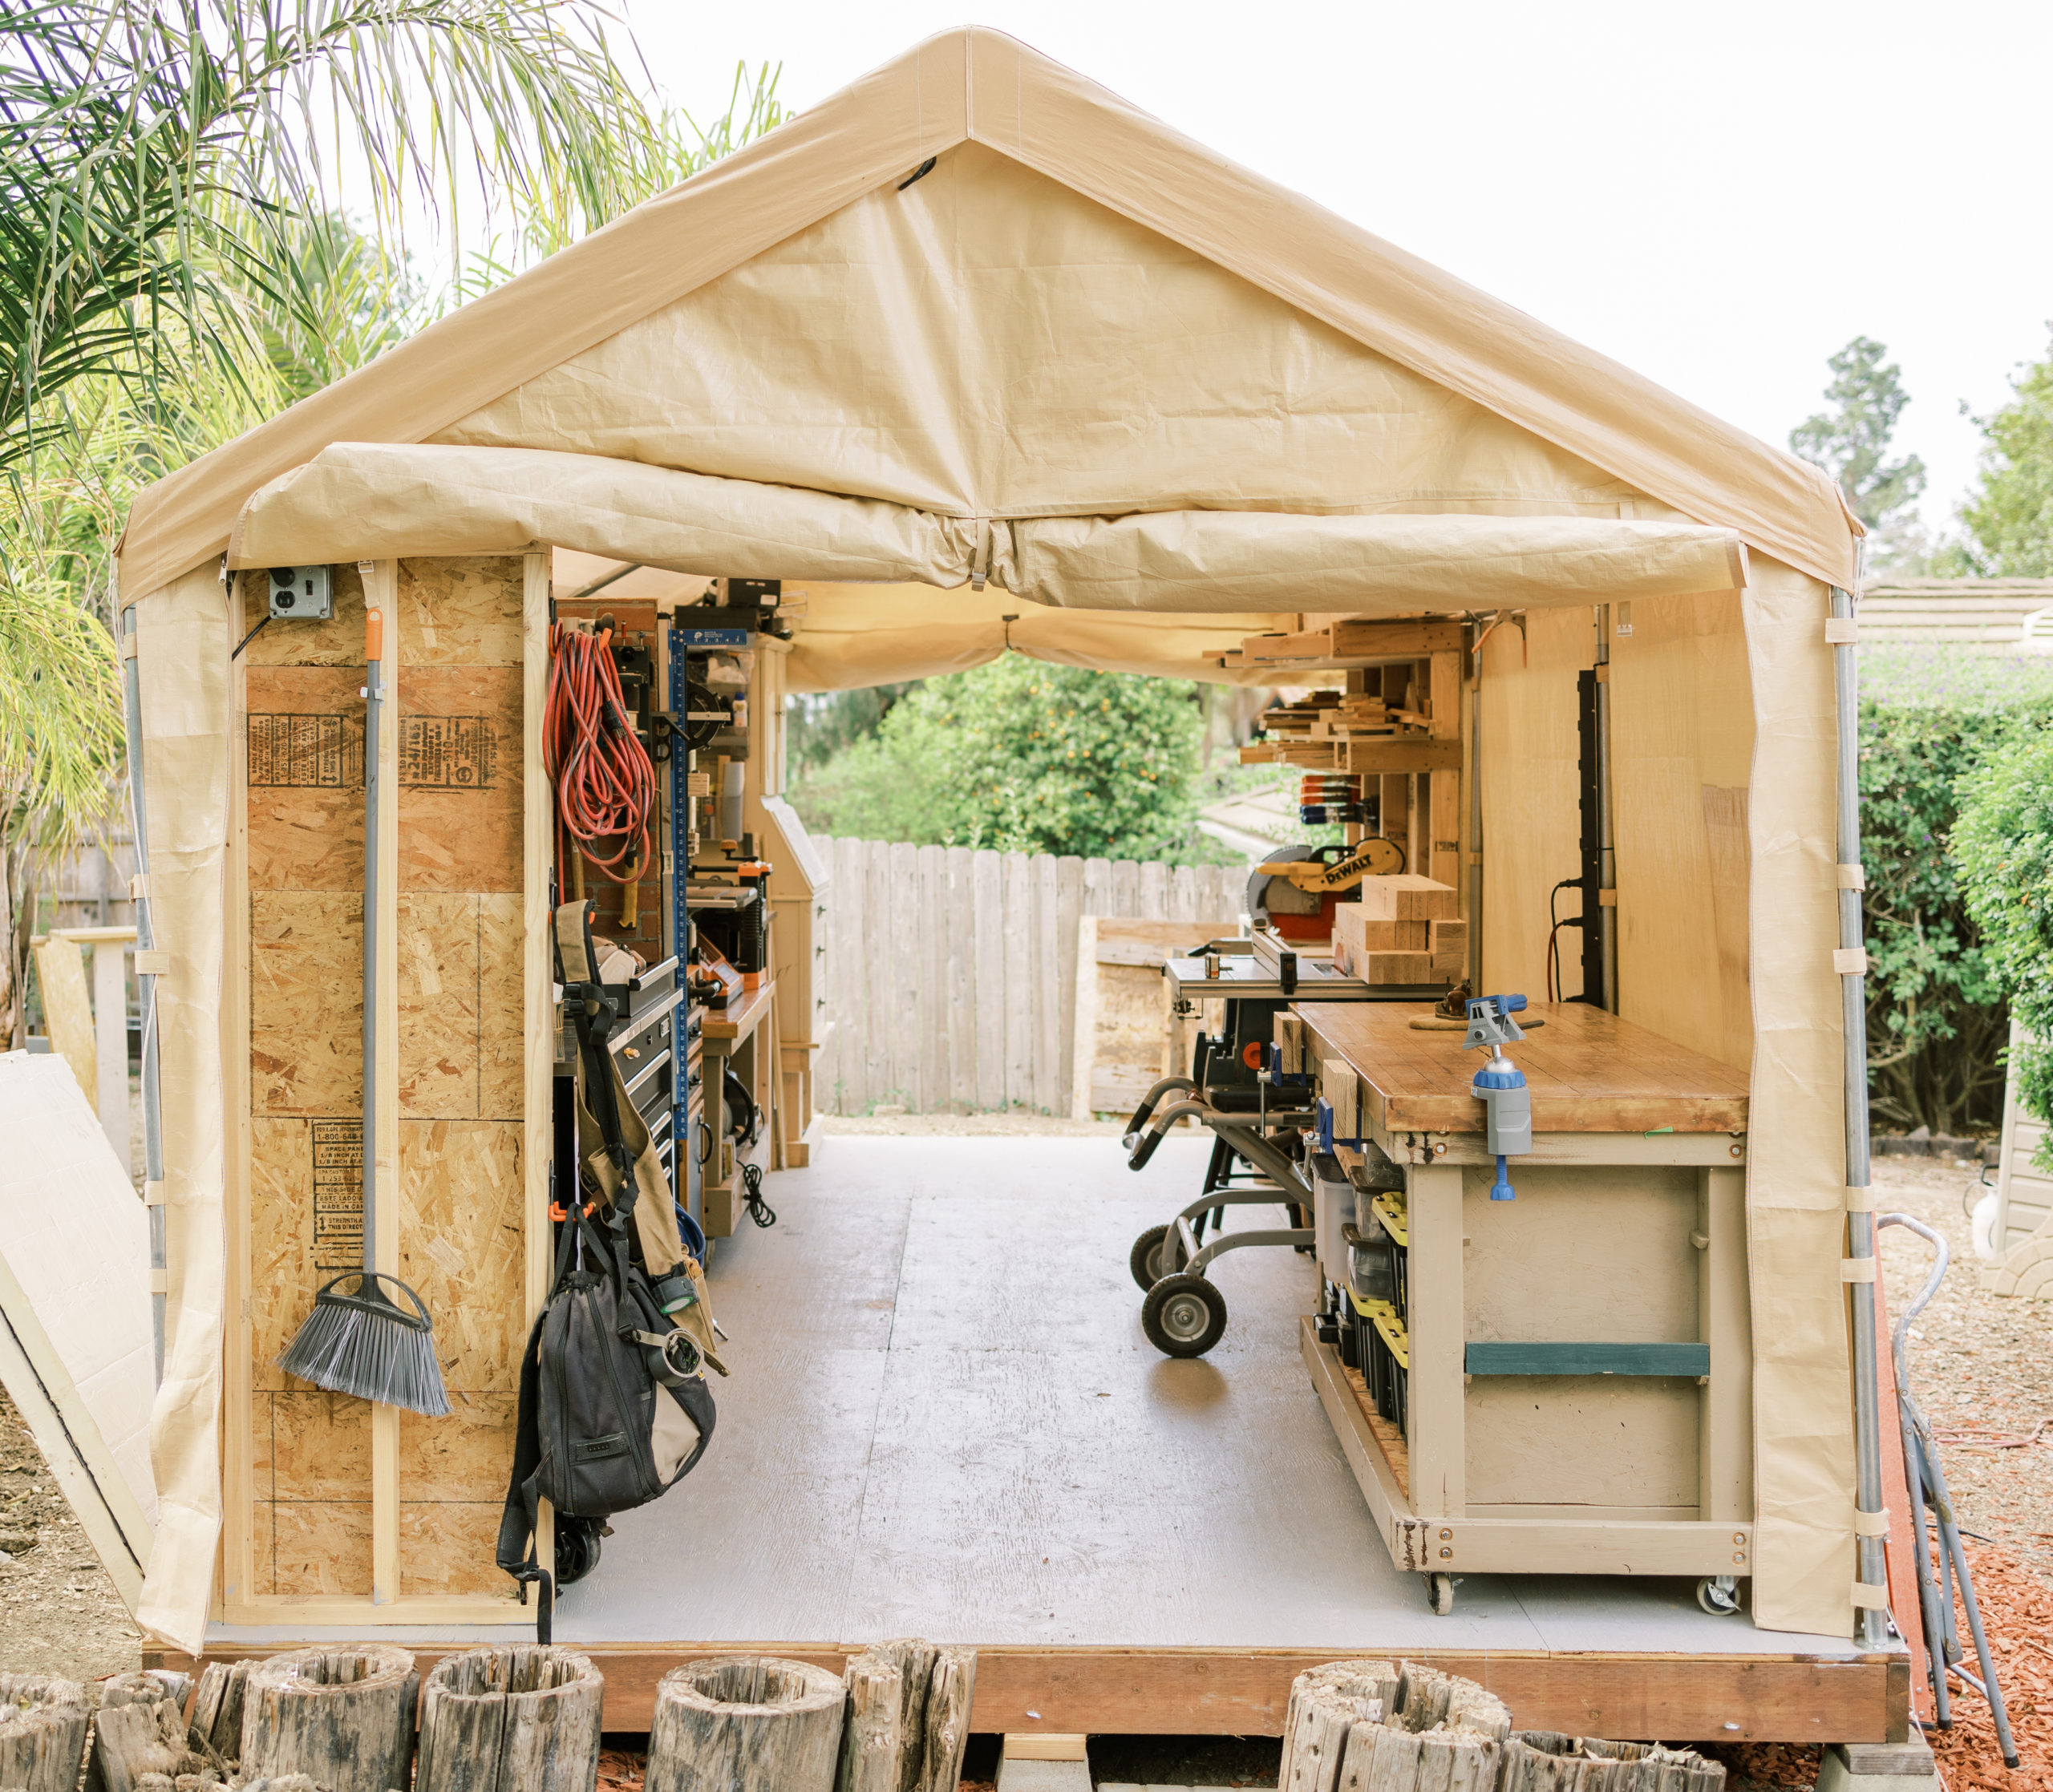 """Shop Tour: This Ingenious """"Temporary"""" Woodshop is Made From a Carport Tent"""